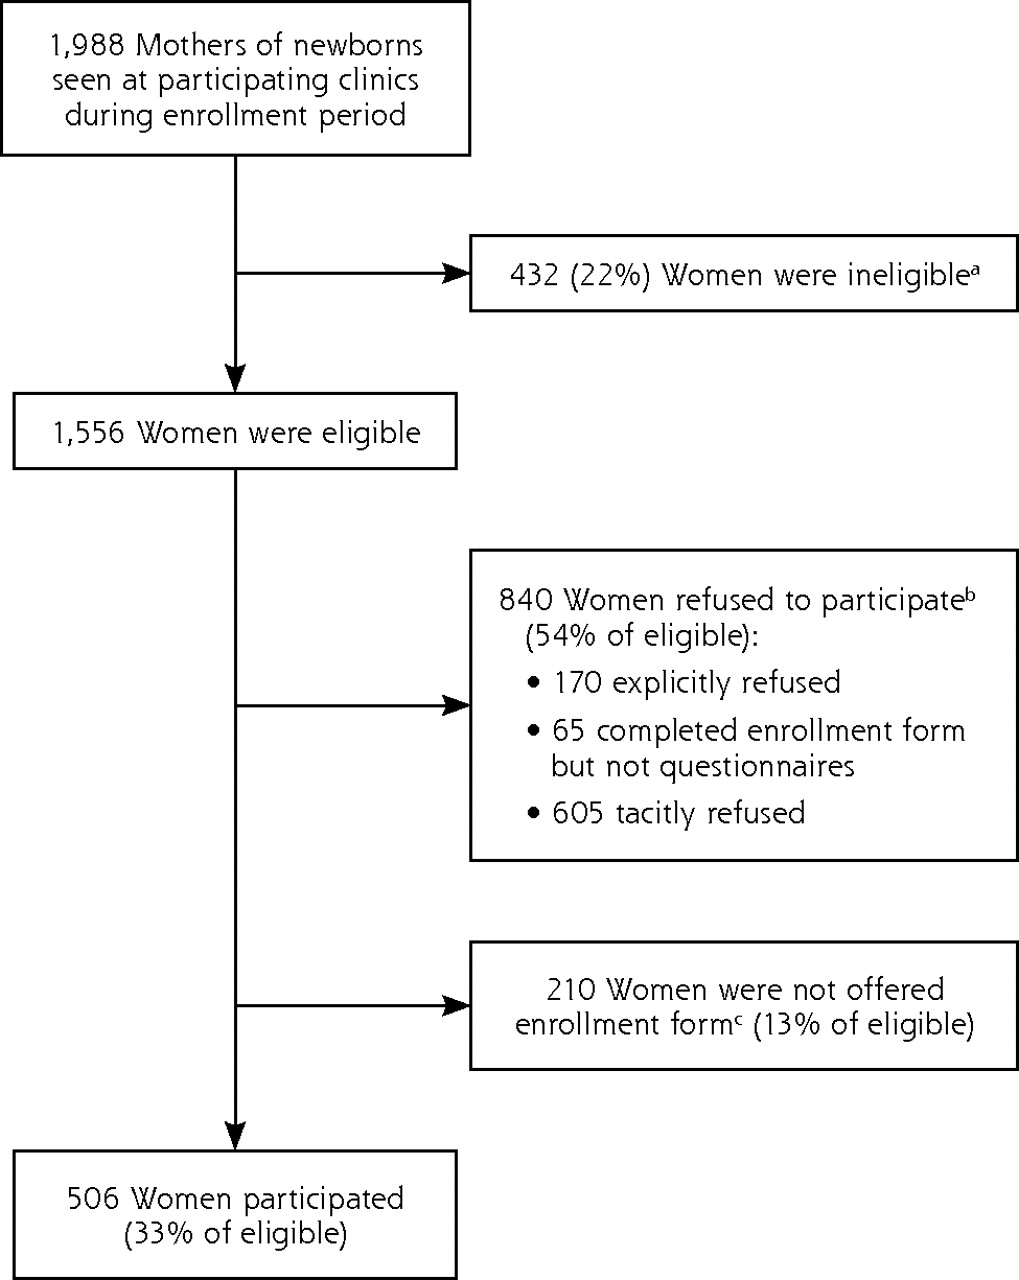 Postpartum Depression Screening At Well Child Visits Validity Of A 2 Question Screen And The PHQ 9